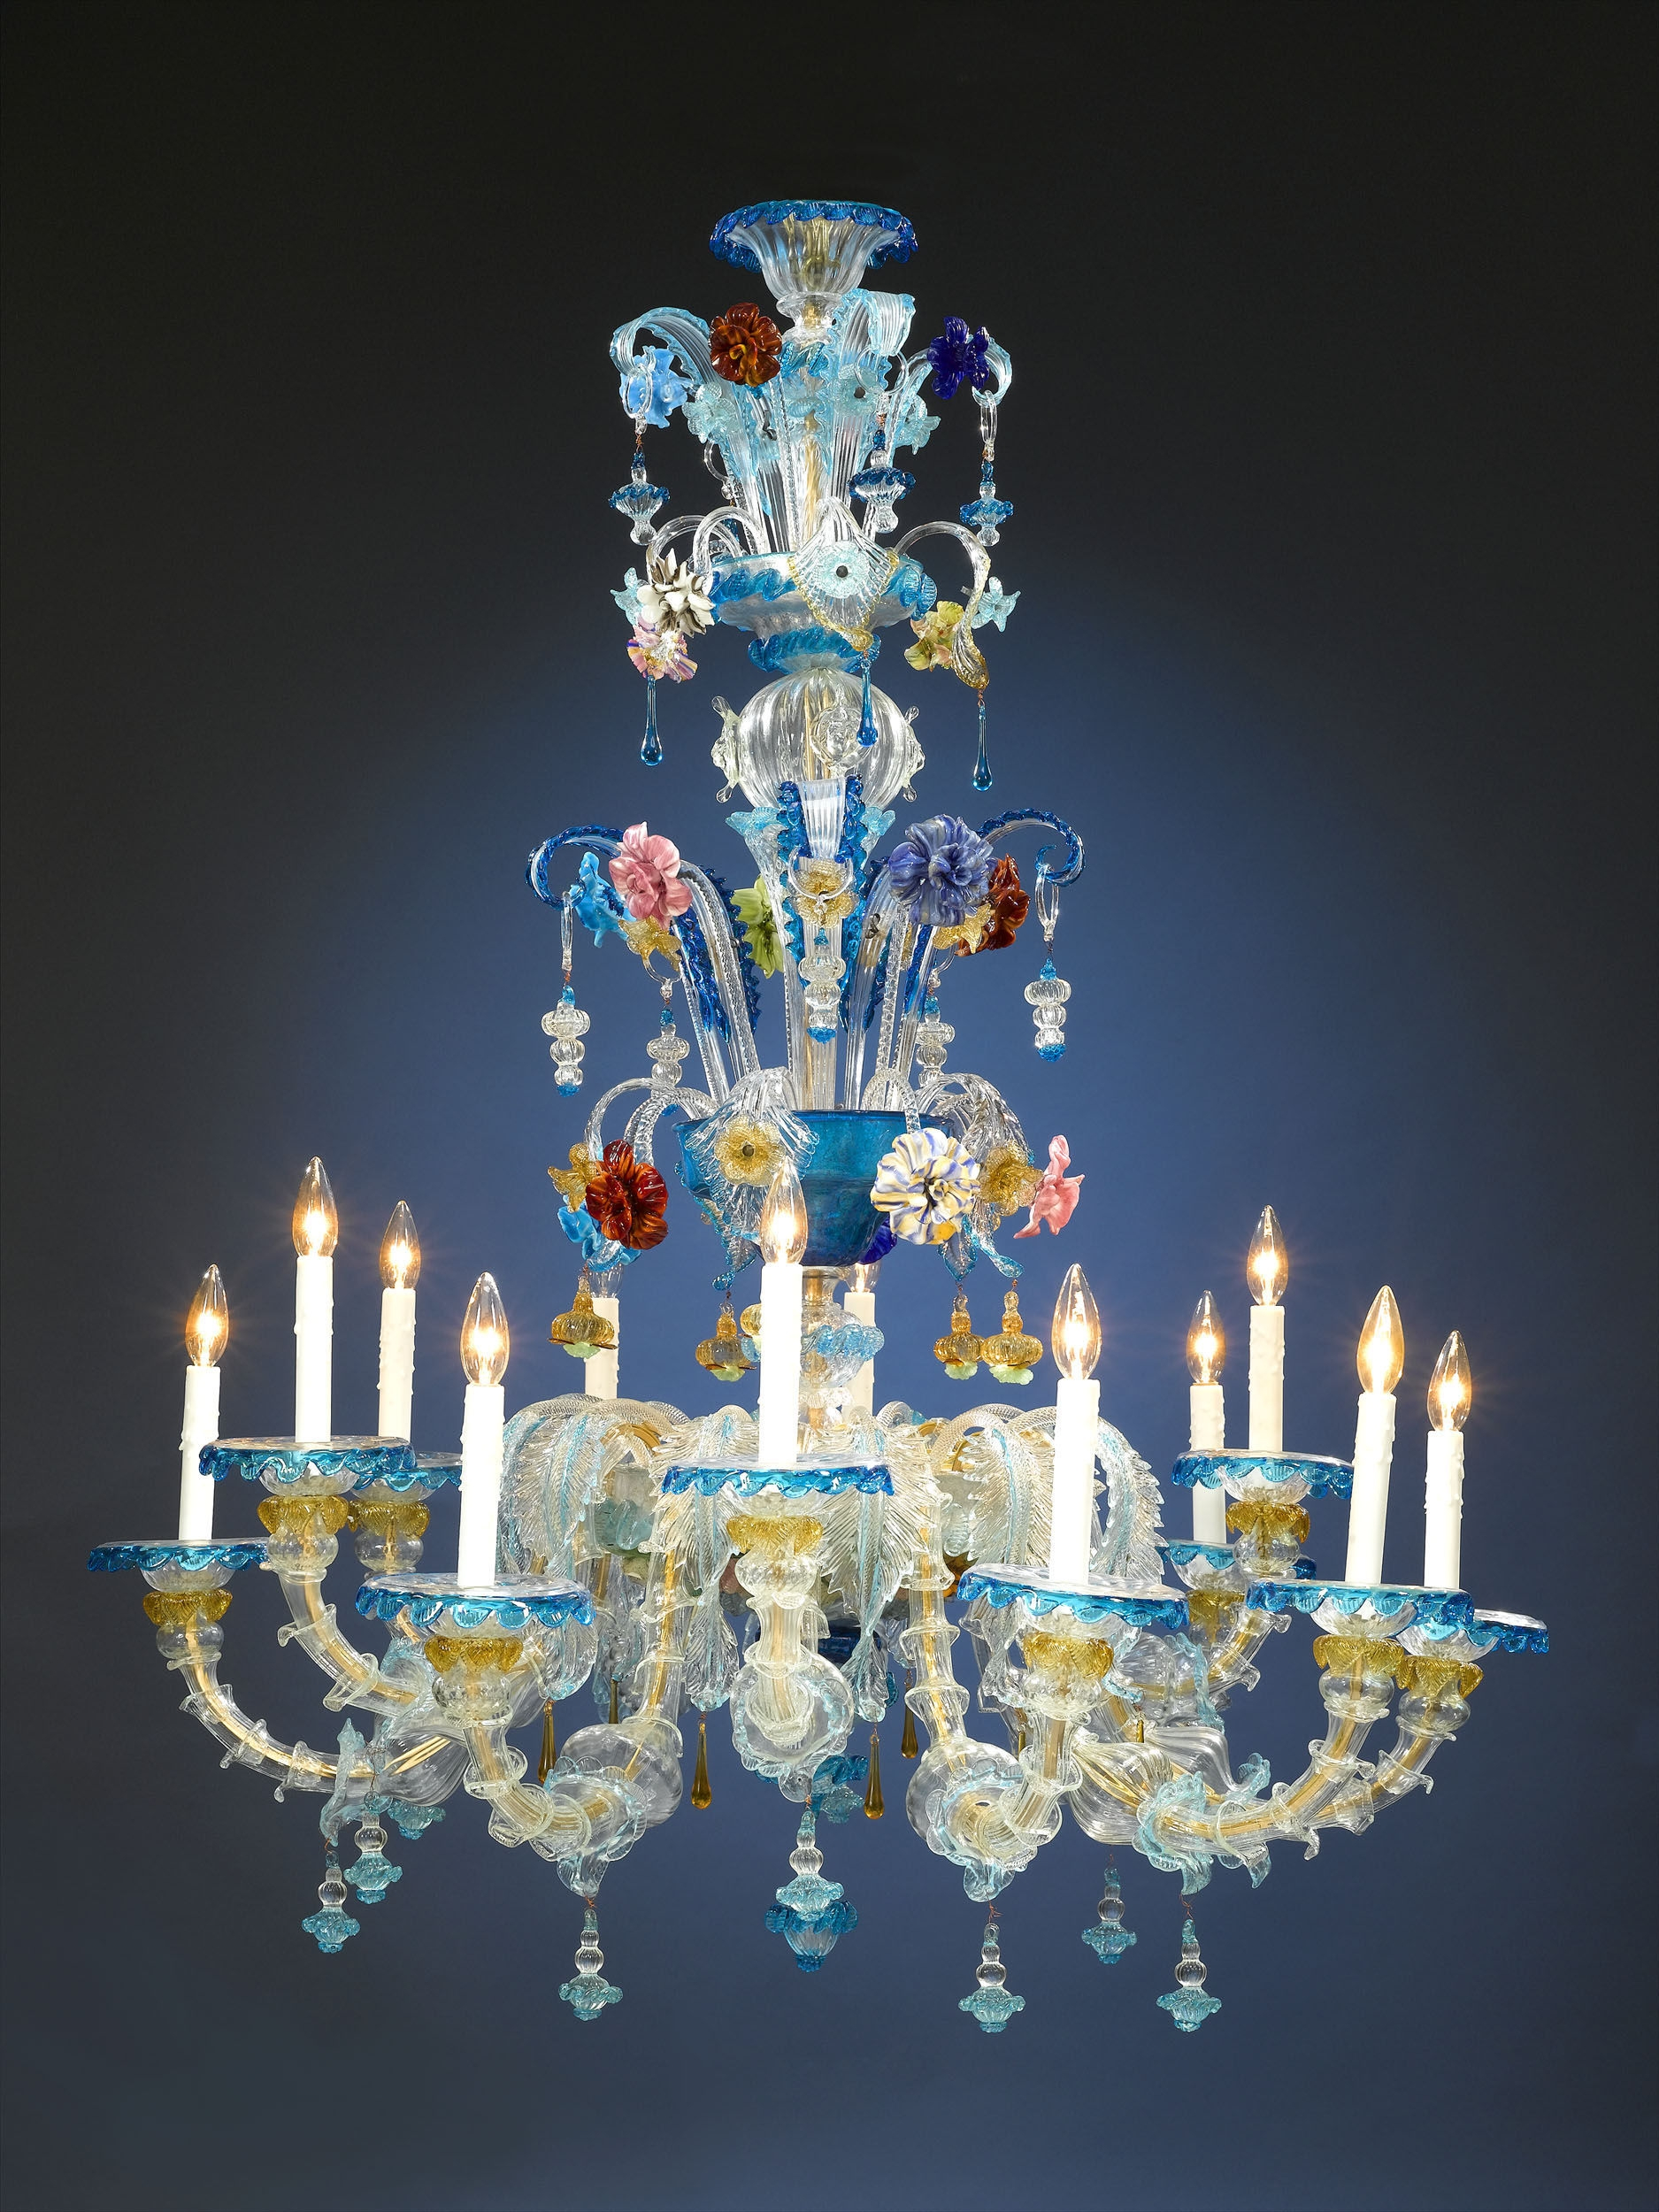 Italian Chandelier Bing Images Lights Pinterest Blue Pertaining To Murano Chandelier Replica (Image 3 of 15)